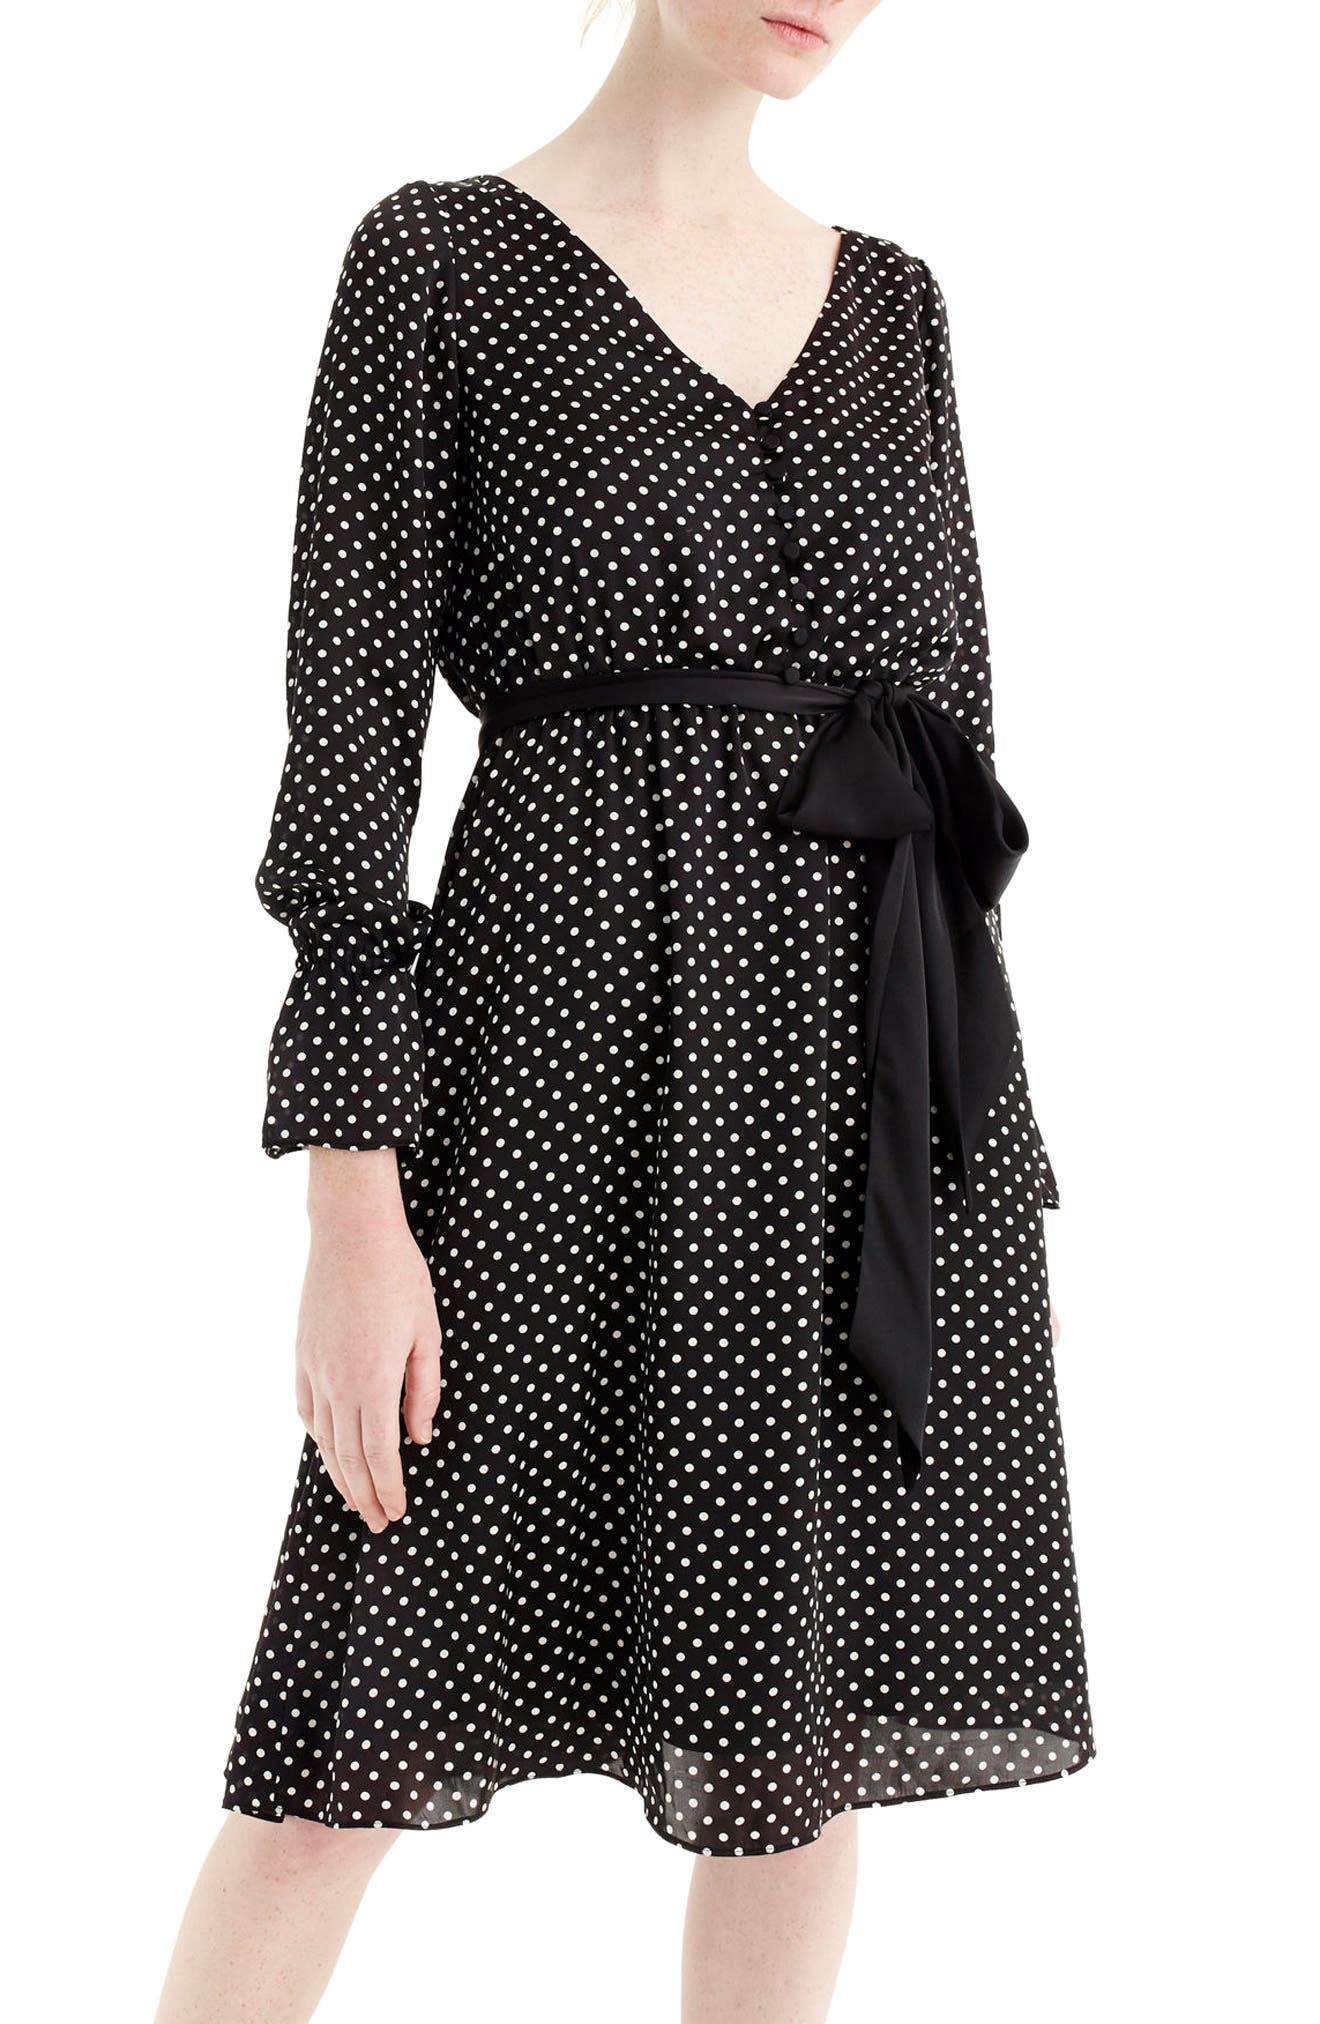 Main Image - J.Crew Long Sleeve Polka Dot Dress